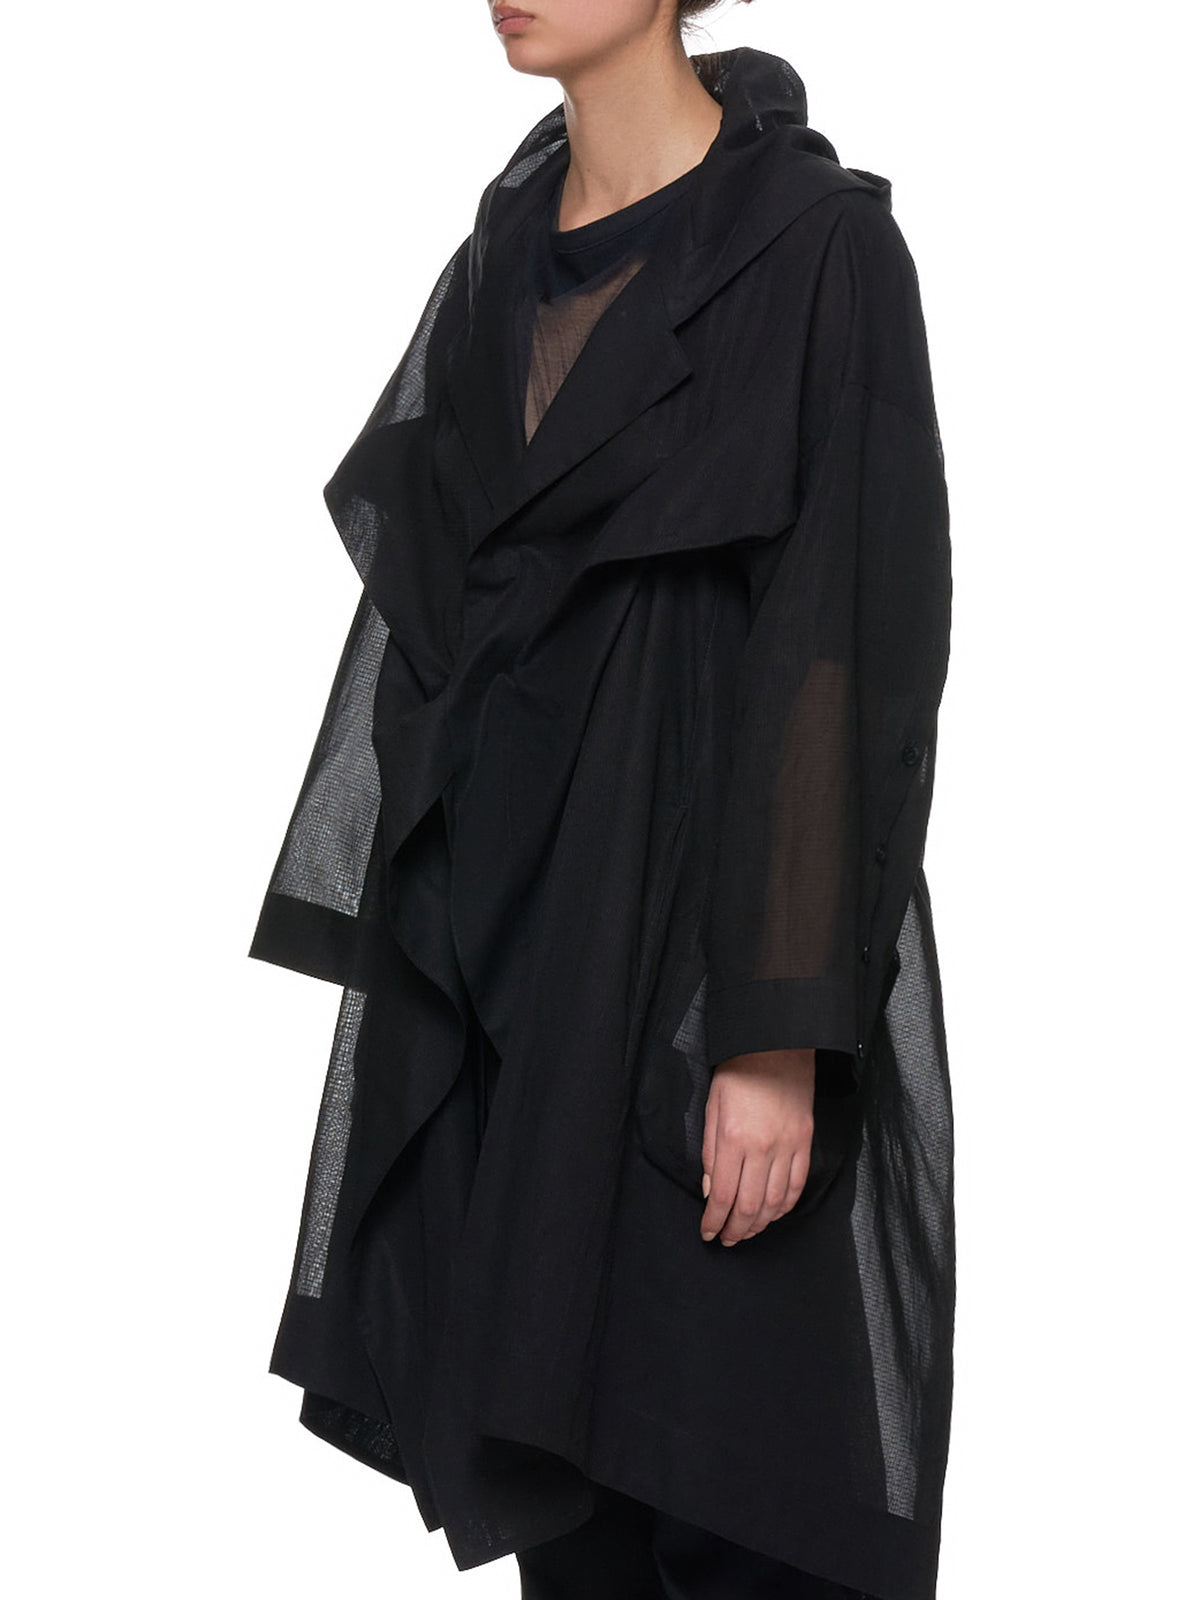 Transparent Duster Jacket (NH-C02-008-BLACK)